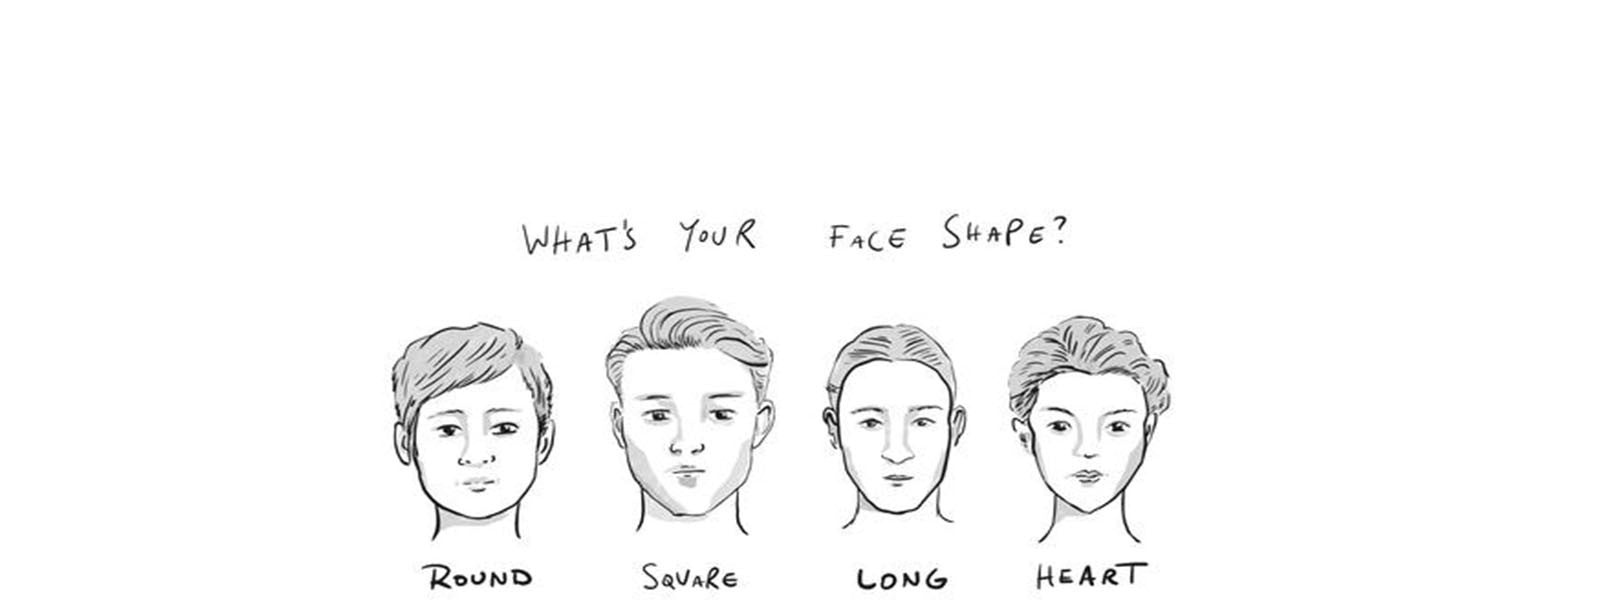 Hipster-Sunnies-Face-Shape-Sunglasses-Guide